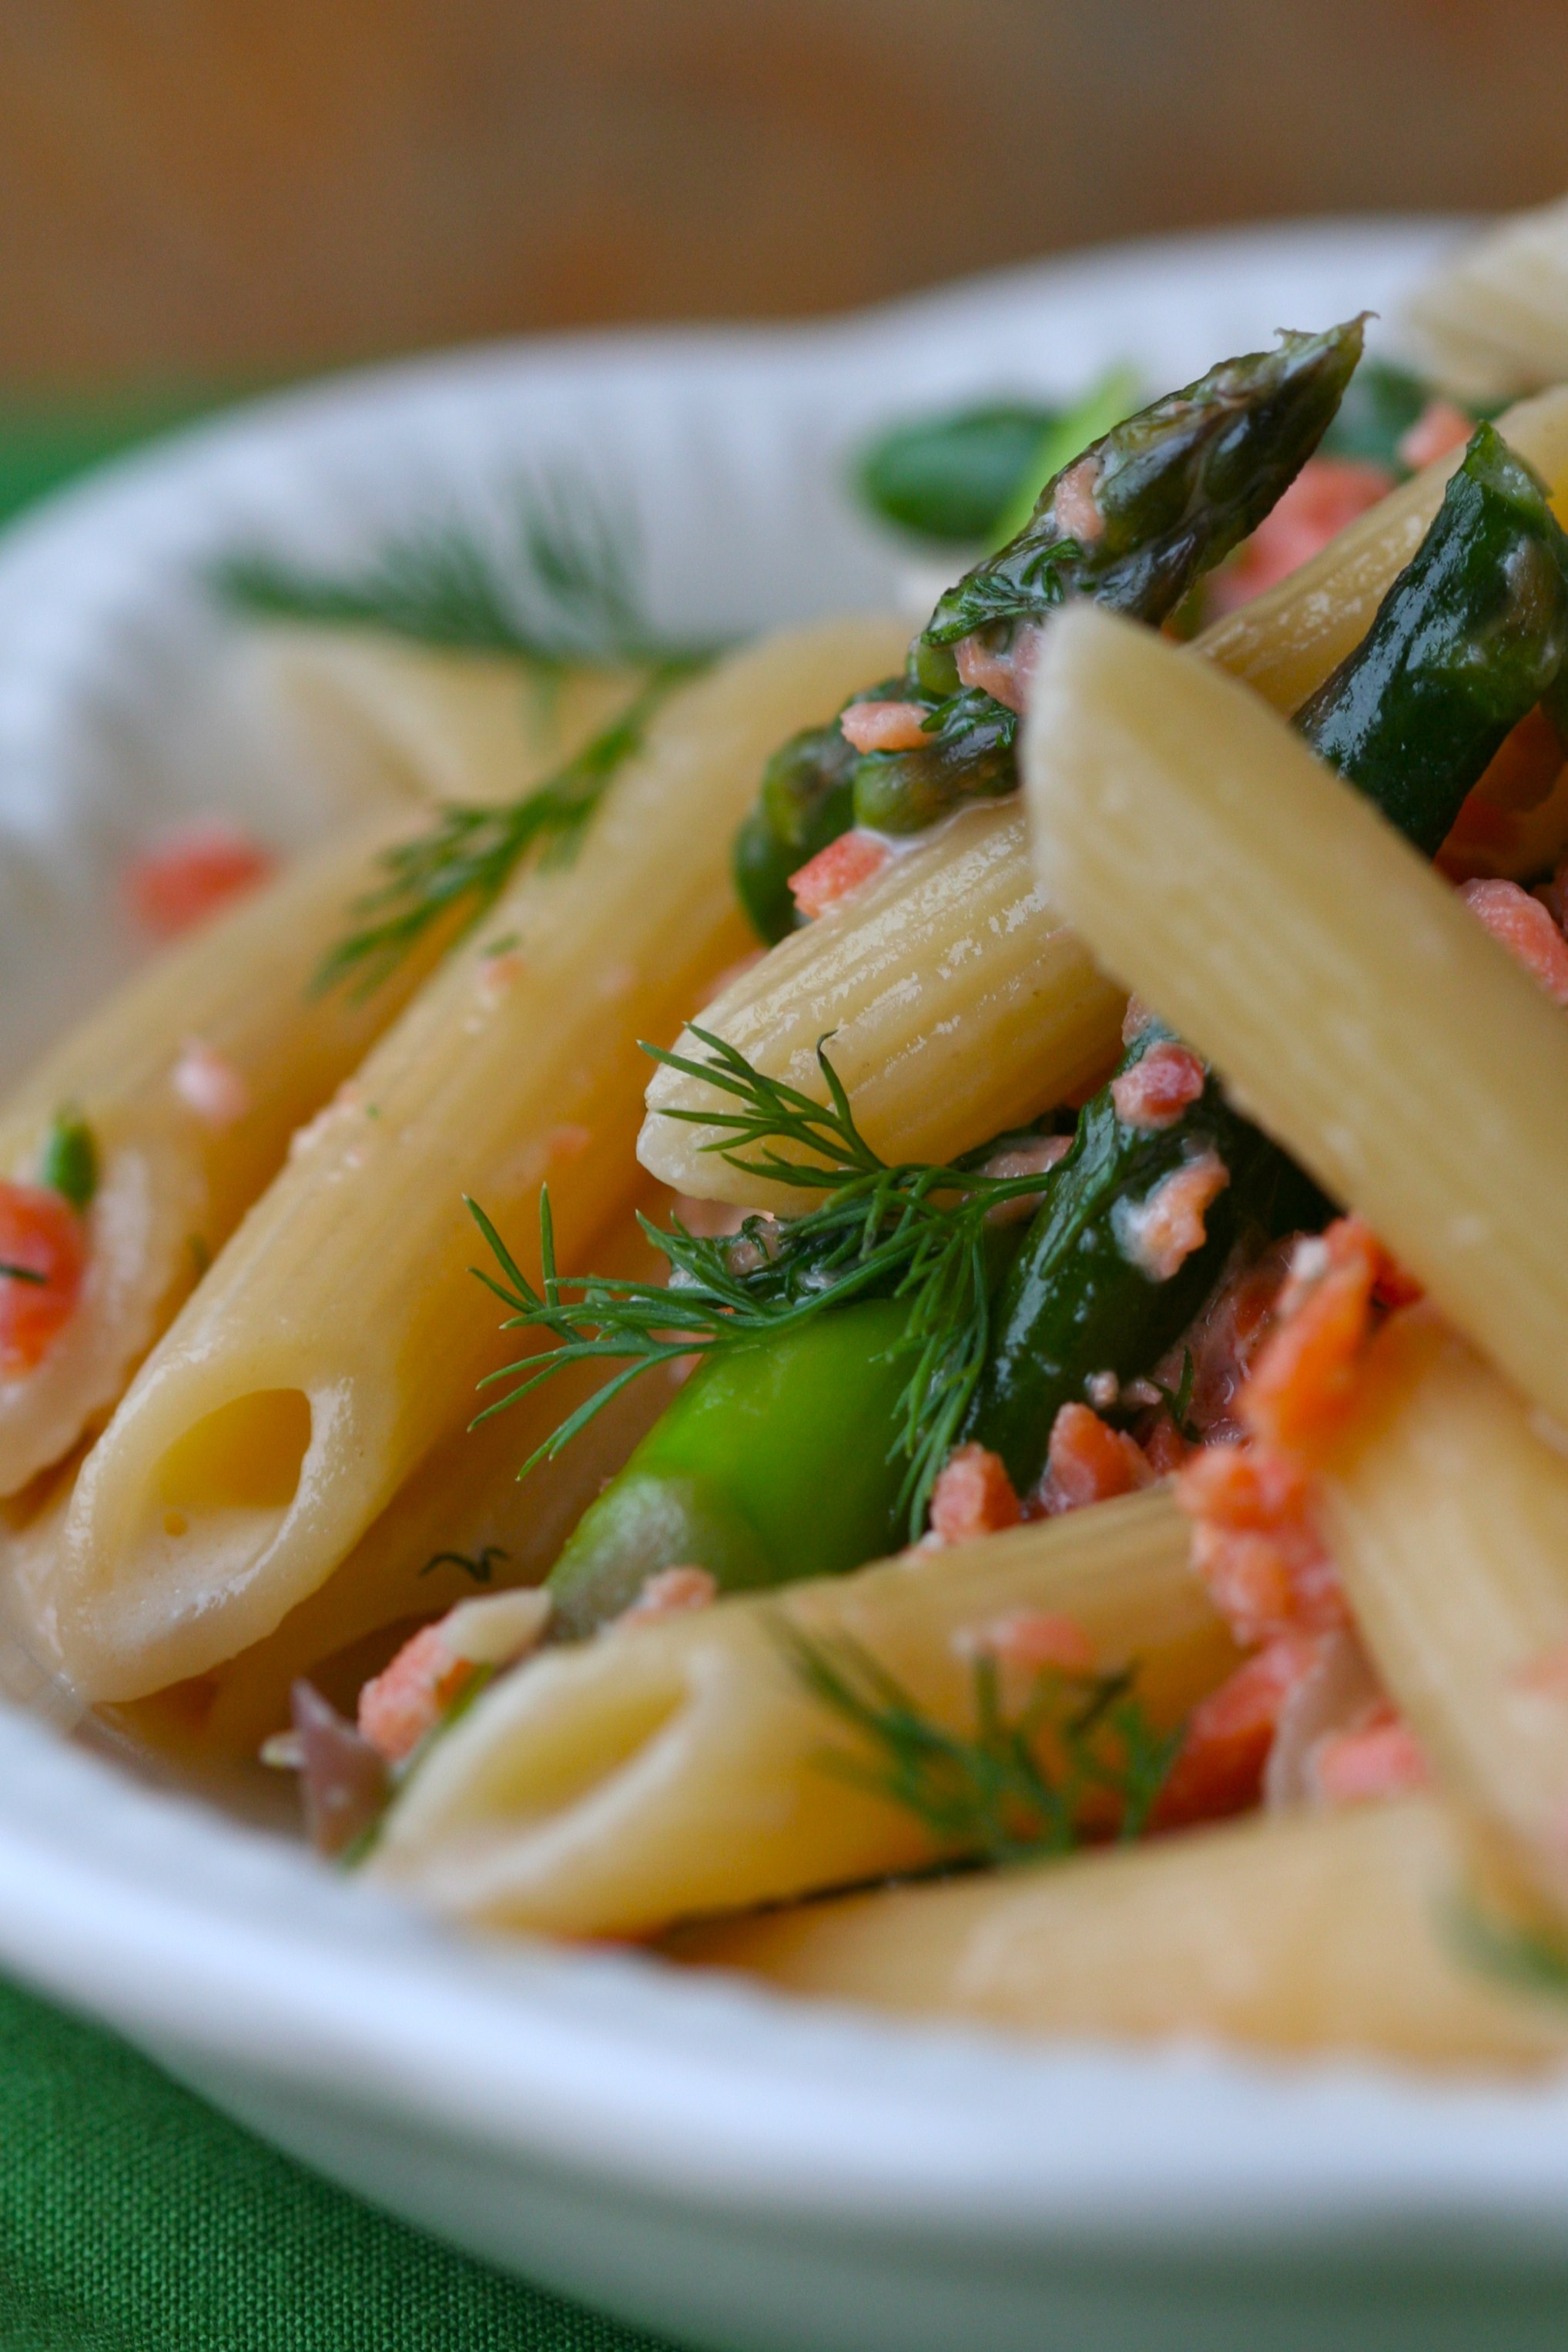 ... / Recipes / Main Dishes / Penne with Asparagus and Salmon-Dill Cream